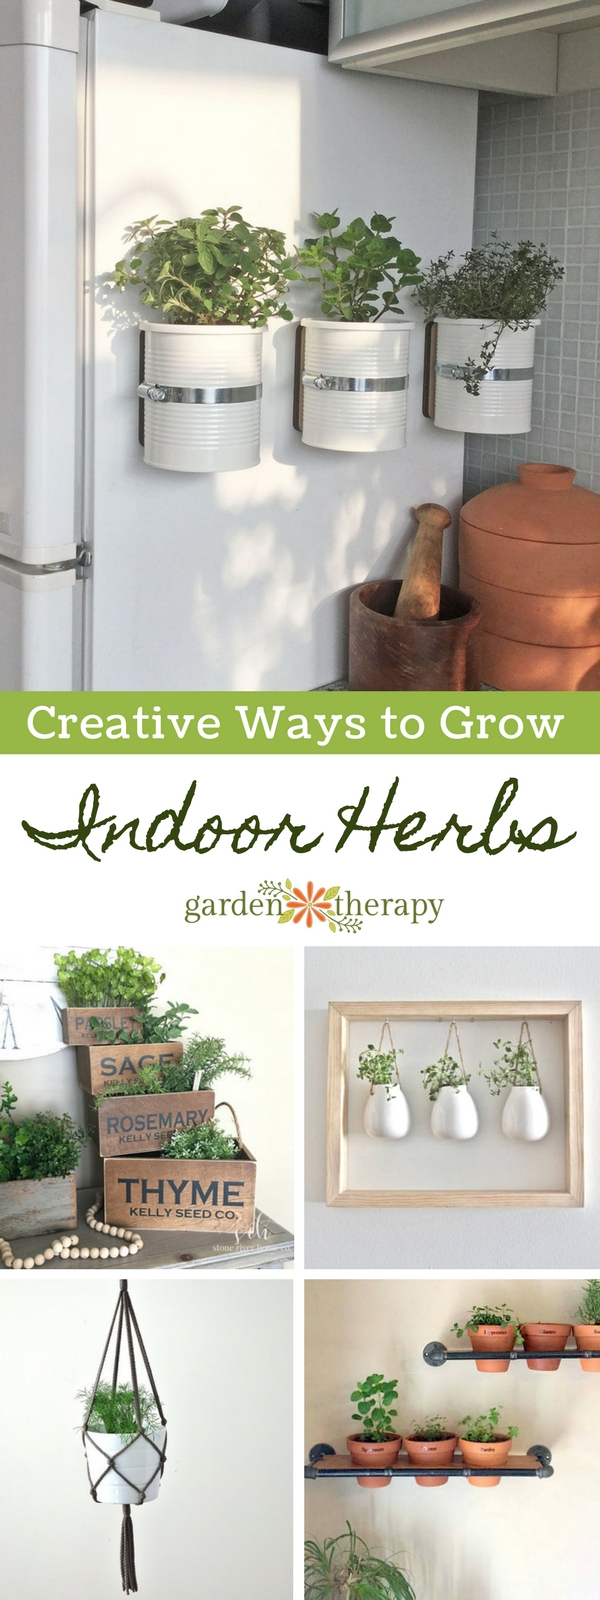 Creative Ways to Grow Indoor Herbs in Any Space